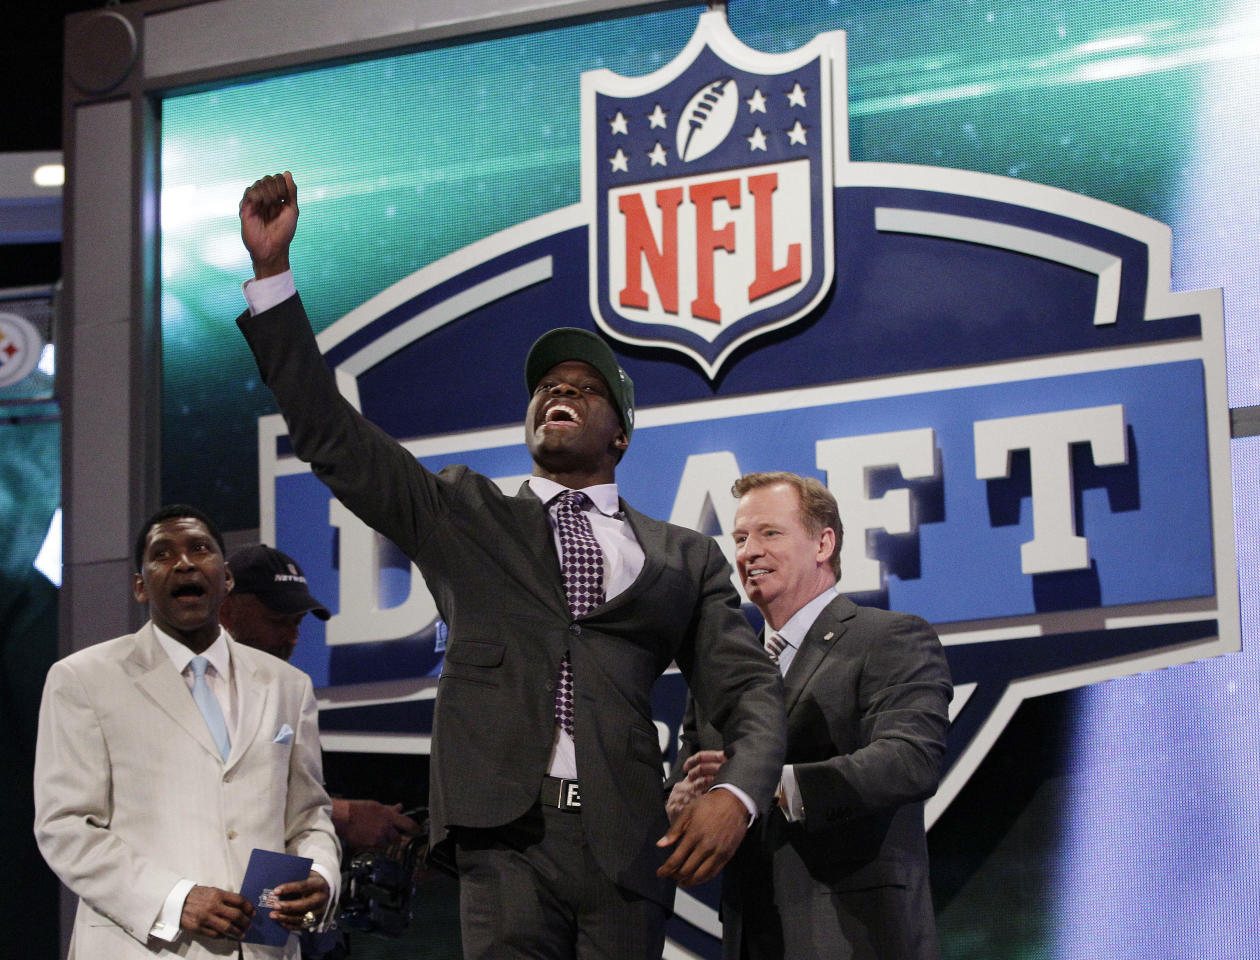 Georgia Tech wide reciever Stephen Hill celebrates as NFL Commissioner Roger Goodell, right, and Wesley Welker, left, watch after Hill was selected 43rd overall by the New York Jets in the second round of the NFL football draft at Radio City Music Hall, Friday, April 27, 2012, in New York. (AP Photo/Frank Franklin II)